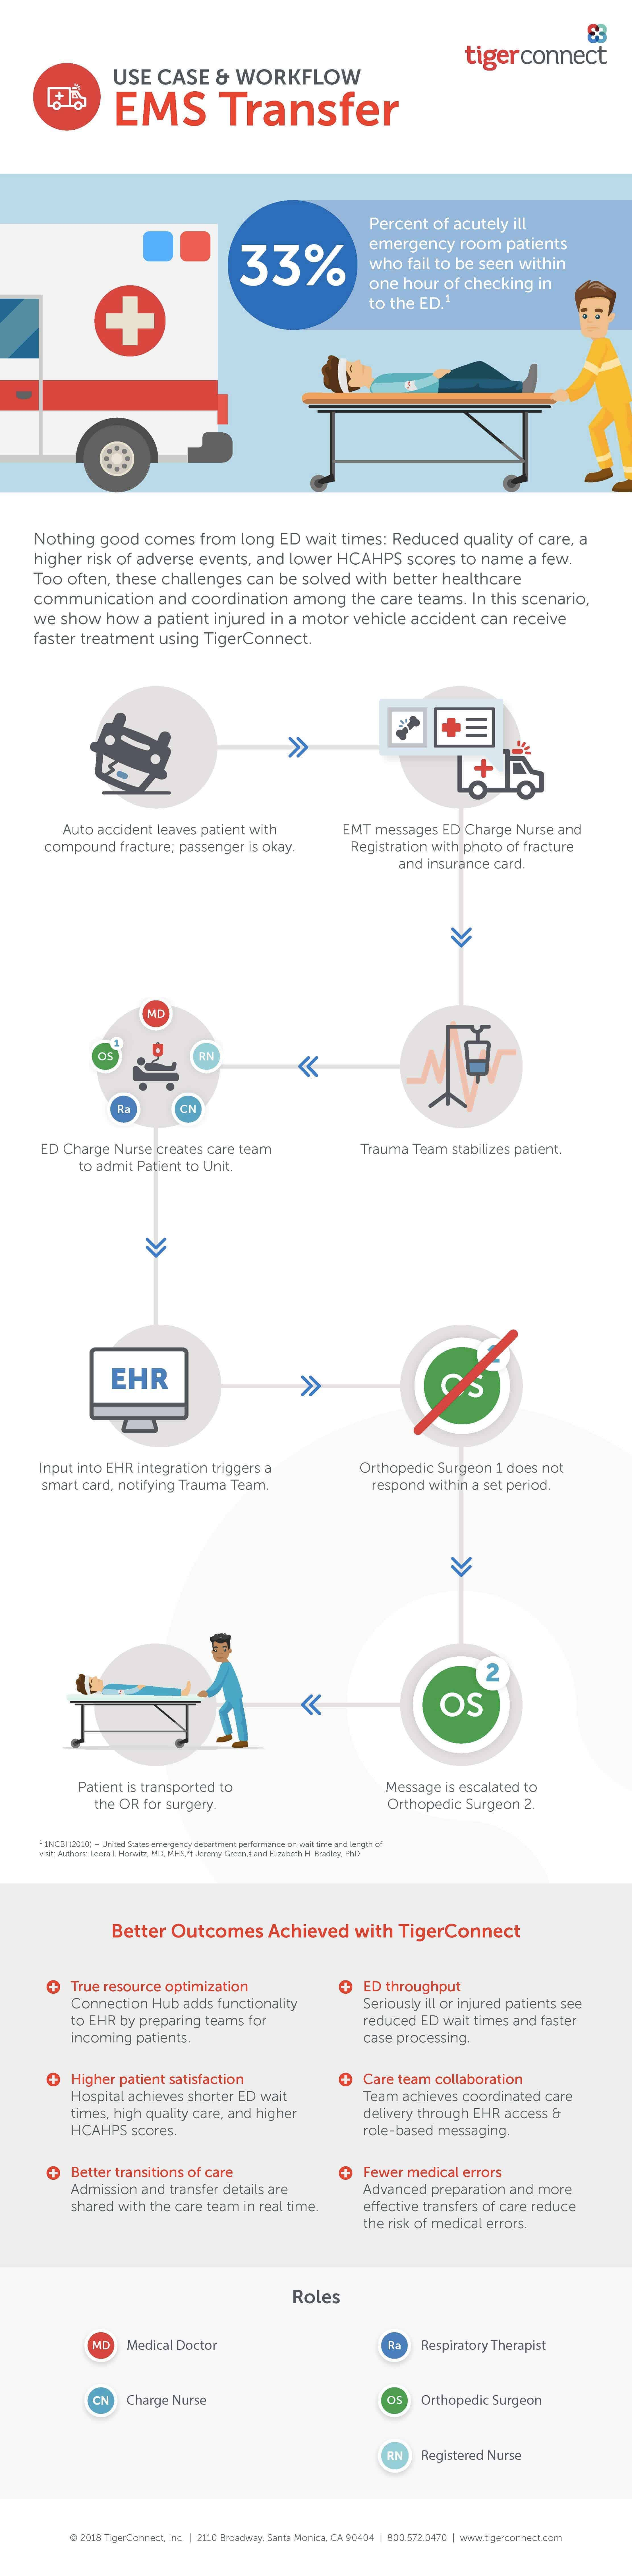 Stroke: Use Case & Workflow Infographic